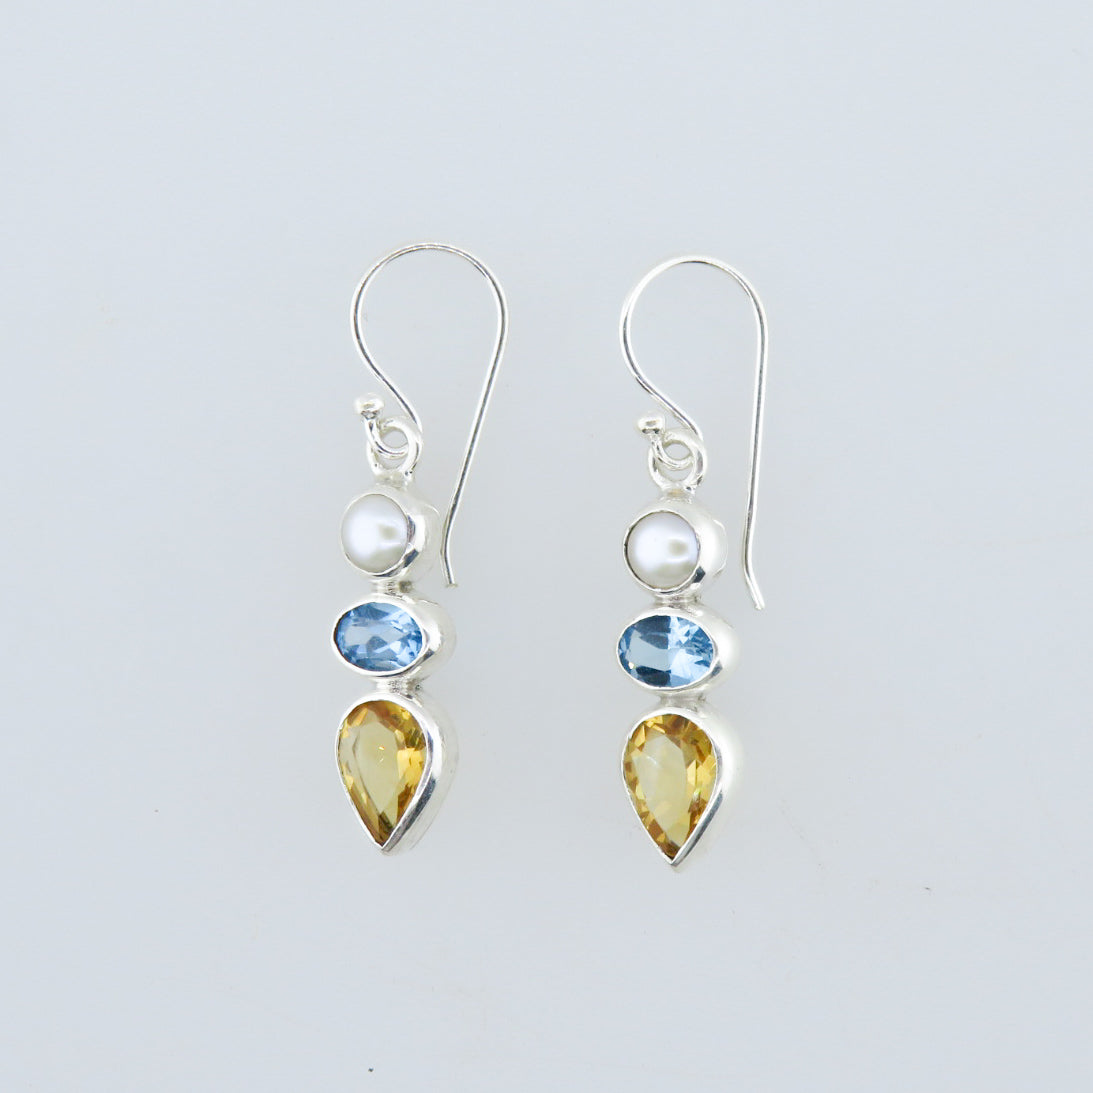 Citrine Sterling Silver Earrings with Blue Topaz and Fresh Water Pearls